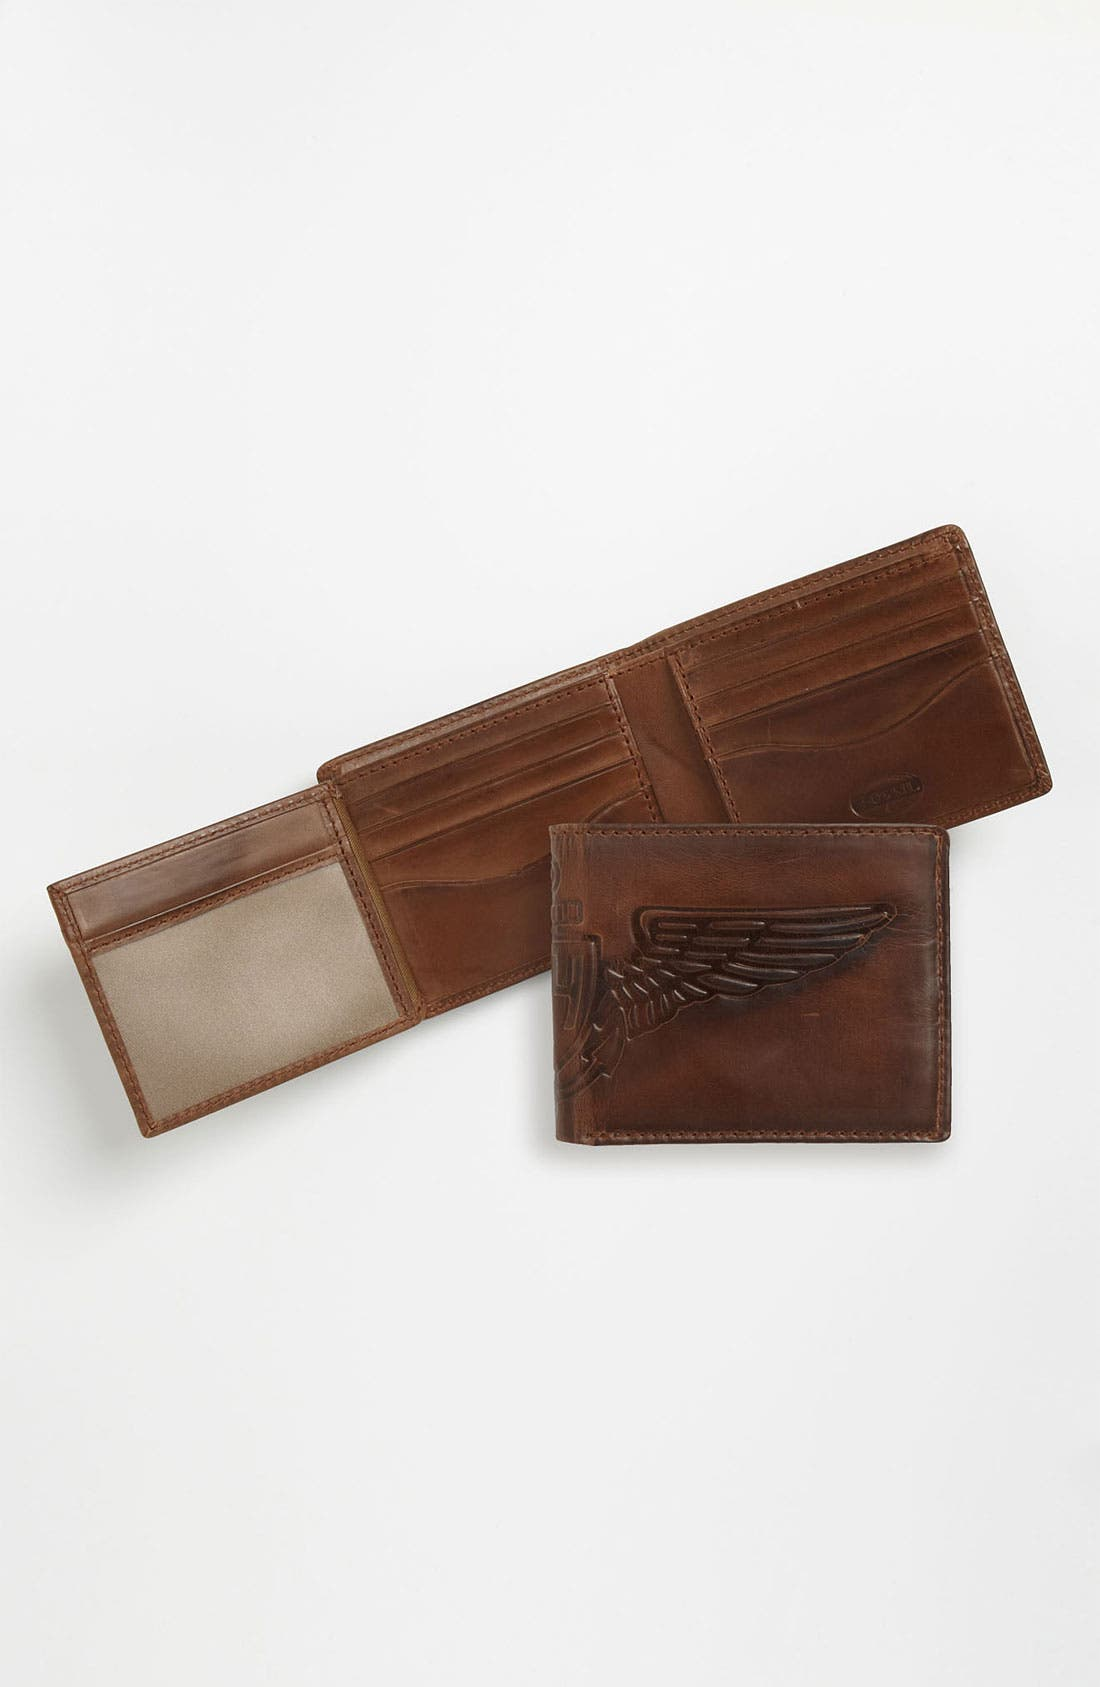 Alternate Image 1 Selected - Fossil 'Flatiron Traveler' Wallet